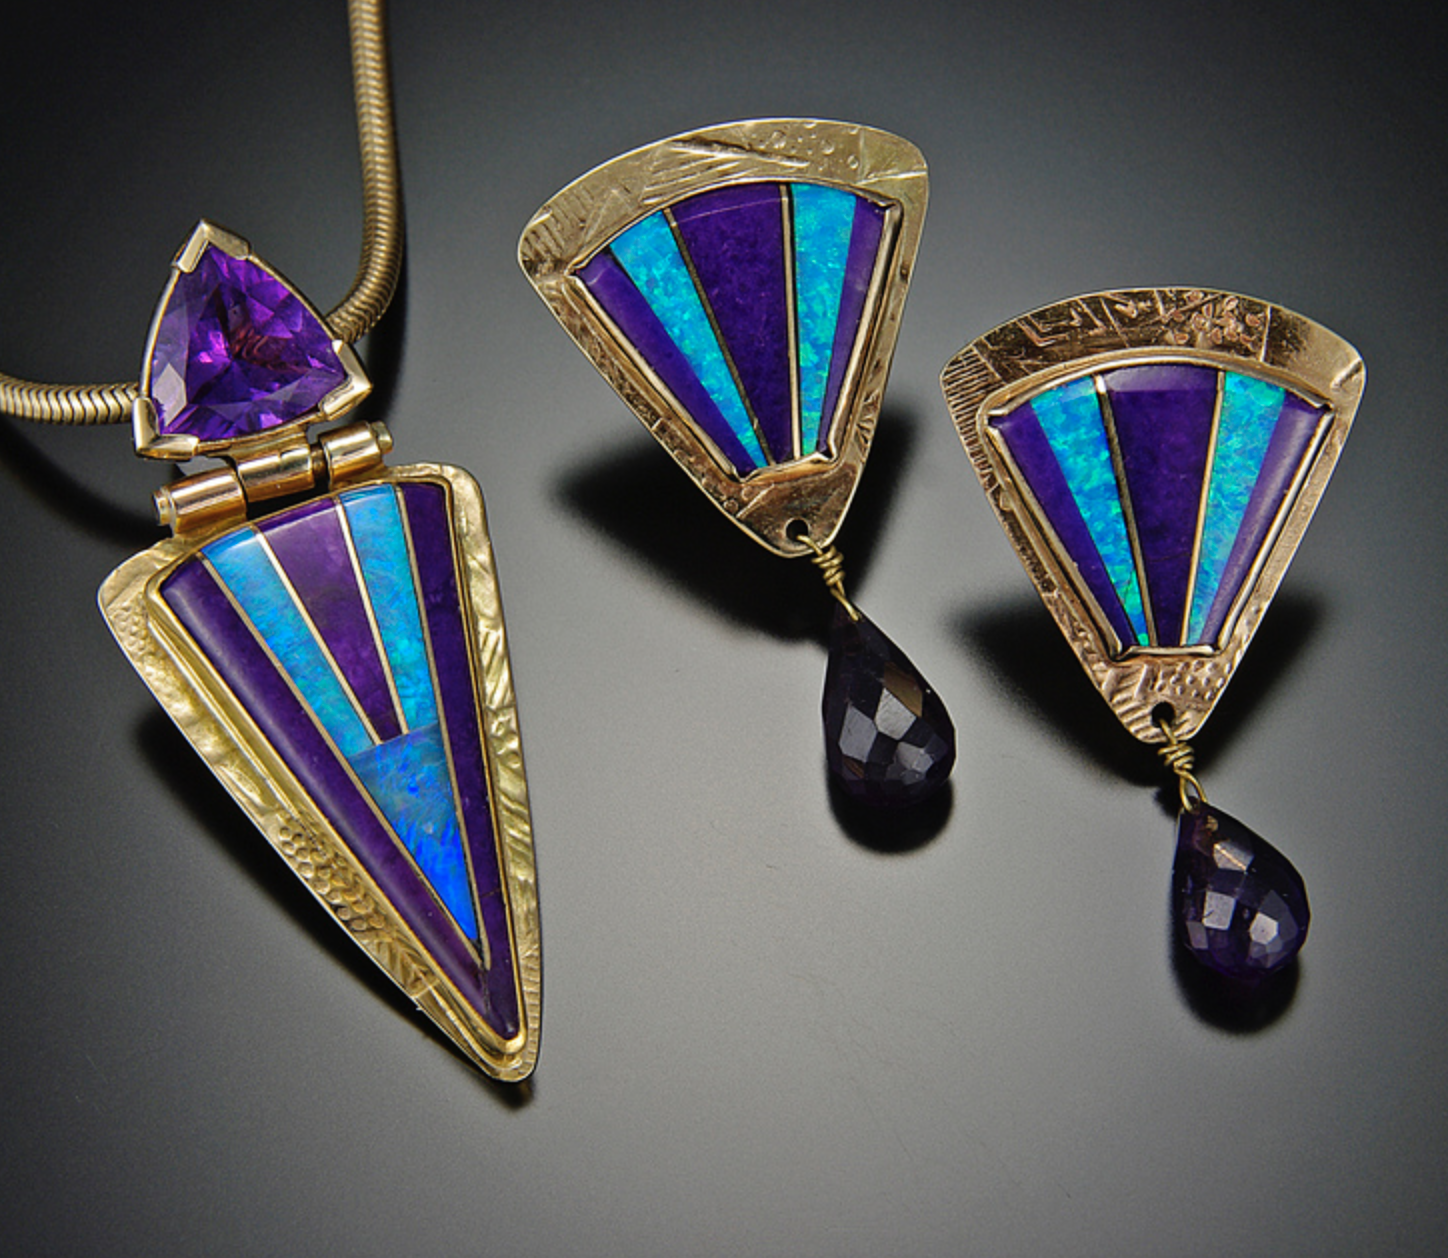 Betsy Bracken - I create colorful inlaid gemstone jewelry in silver & gold,that is either cast from my original waxes,or fabricated from sheet and wires. I also have a line of cuff bracelets in silver, gold & copper.